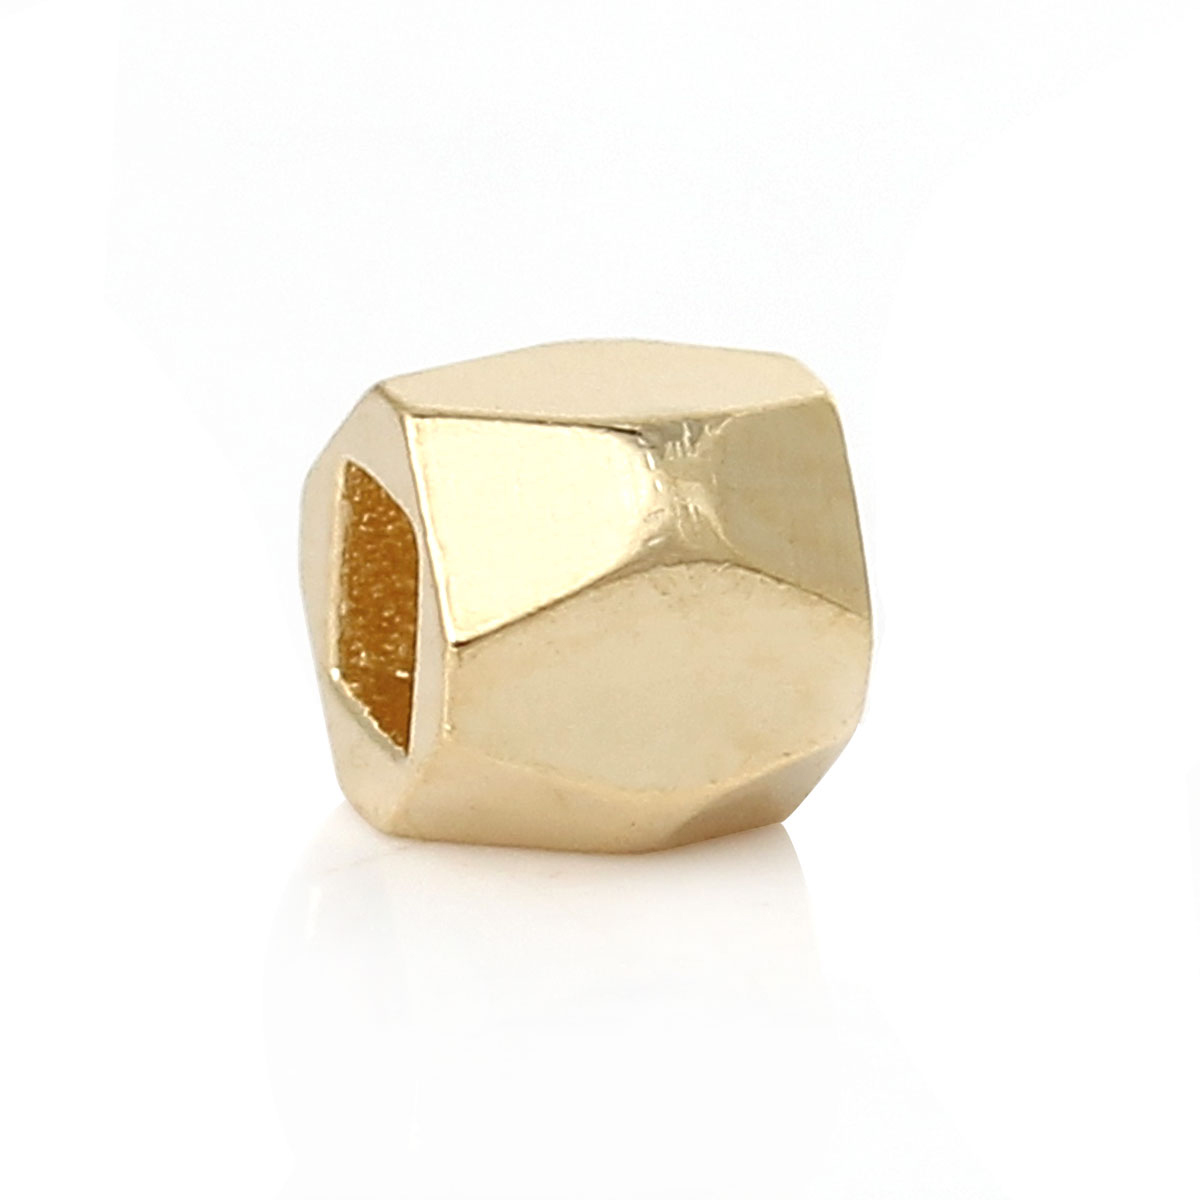 1/8 Doreenbeads Copper Spacer Beads Cube Gold Color Faceted About 3.4mm x 3.4mm 1/8 ,hole:approx 1.7mm X 1.7mm,5 Pieces Beautiful In Colour